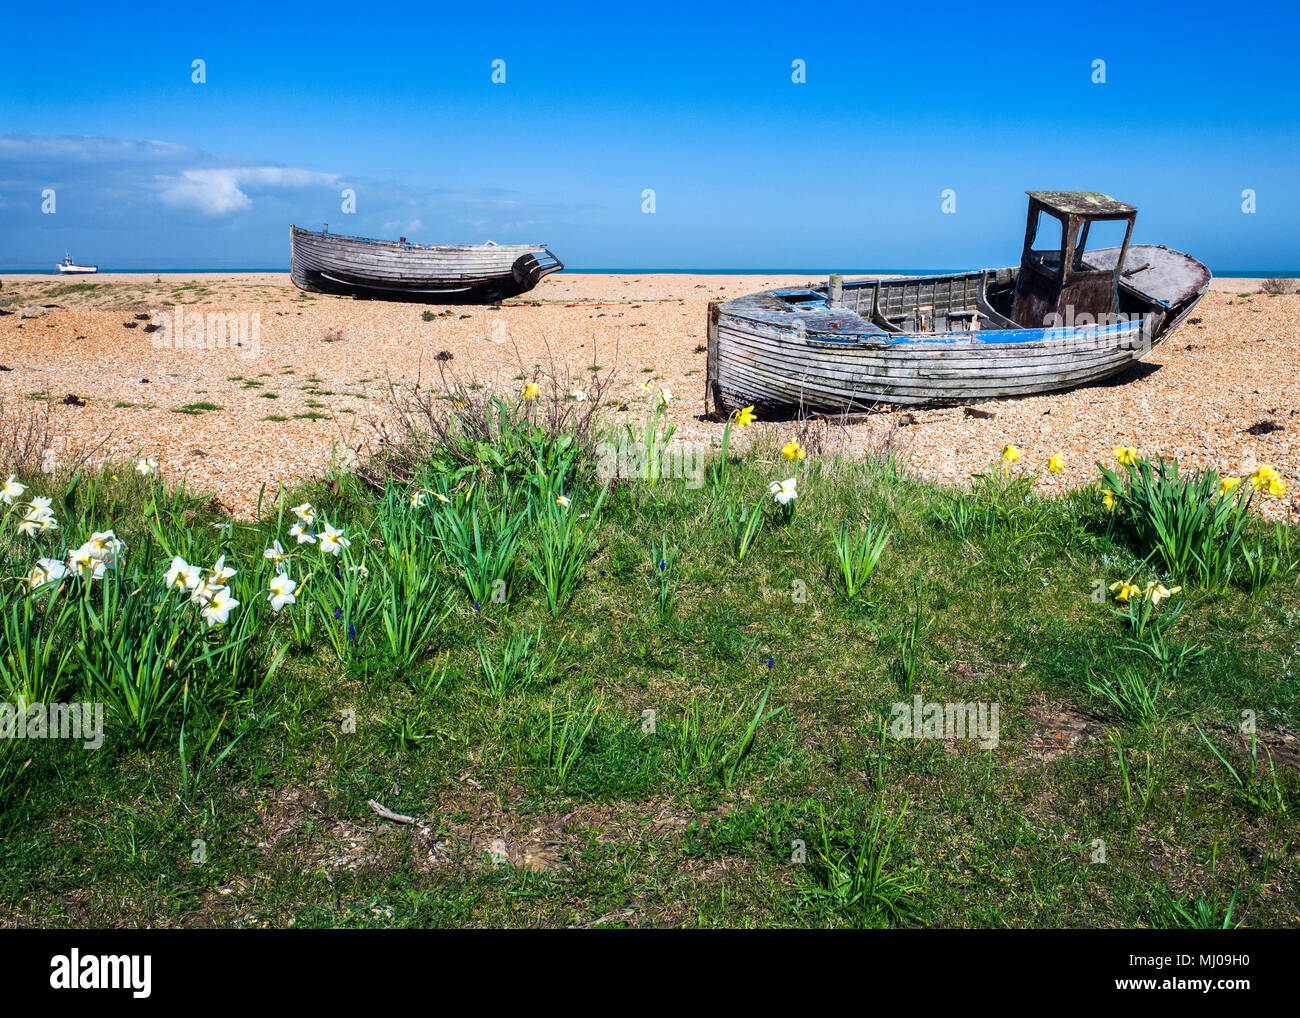 A derelict clinker-built wooden fishing boat with wheelhouse,abandoned on the shingle beach at Dungeness, Sussex, England Stock Photo